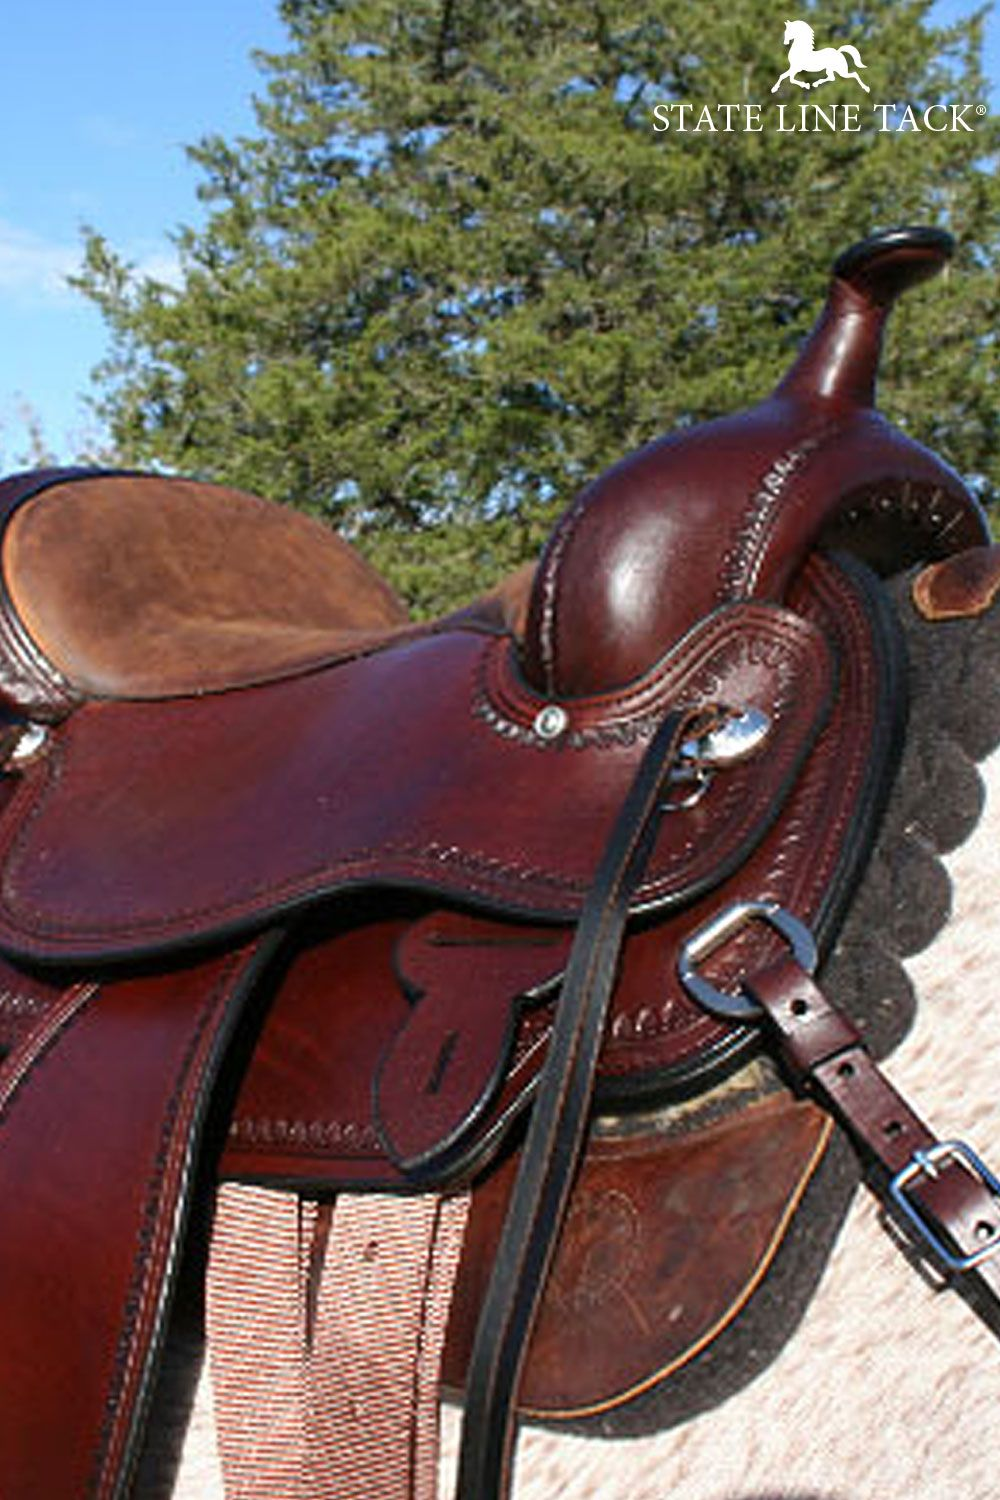 Western Saddles | Roping saddles, Cowgirl and horse, Horse